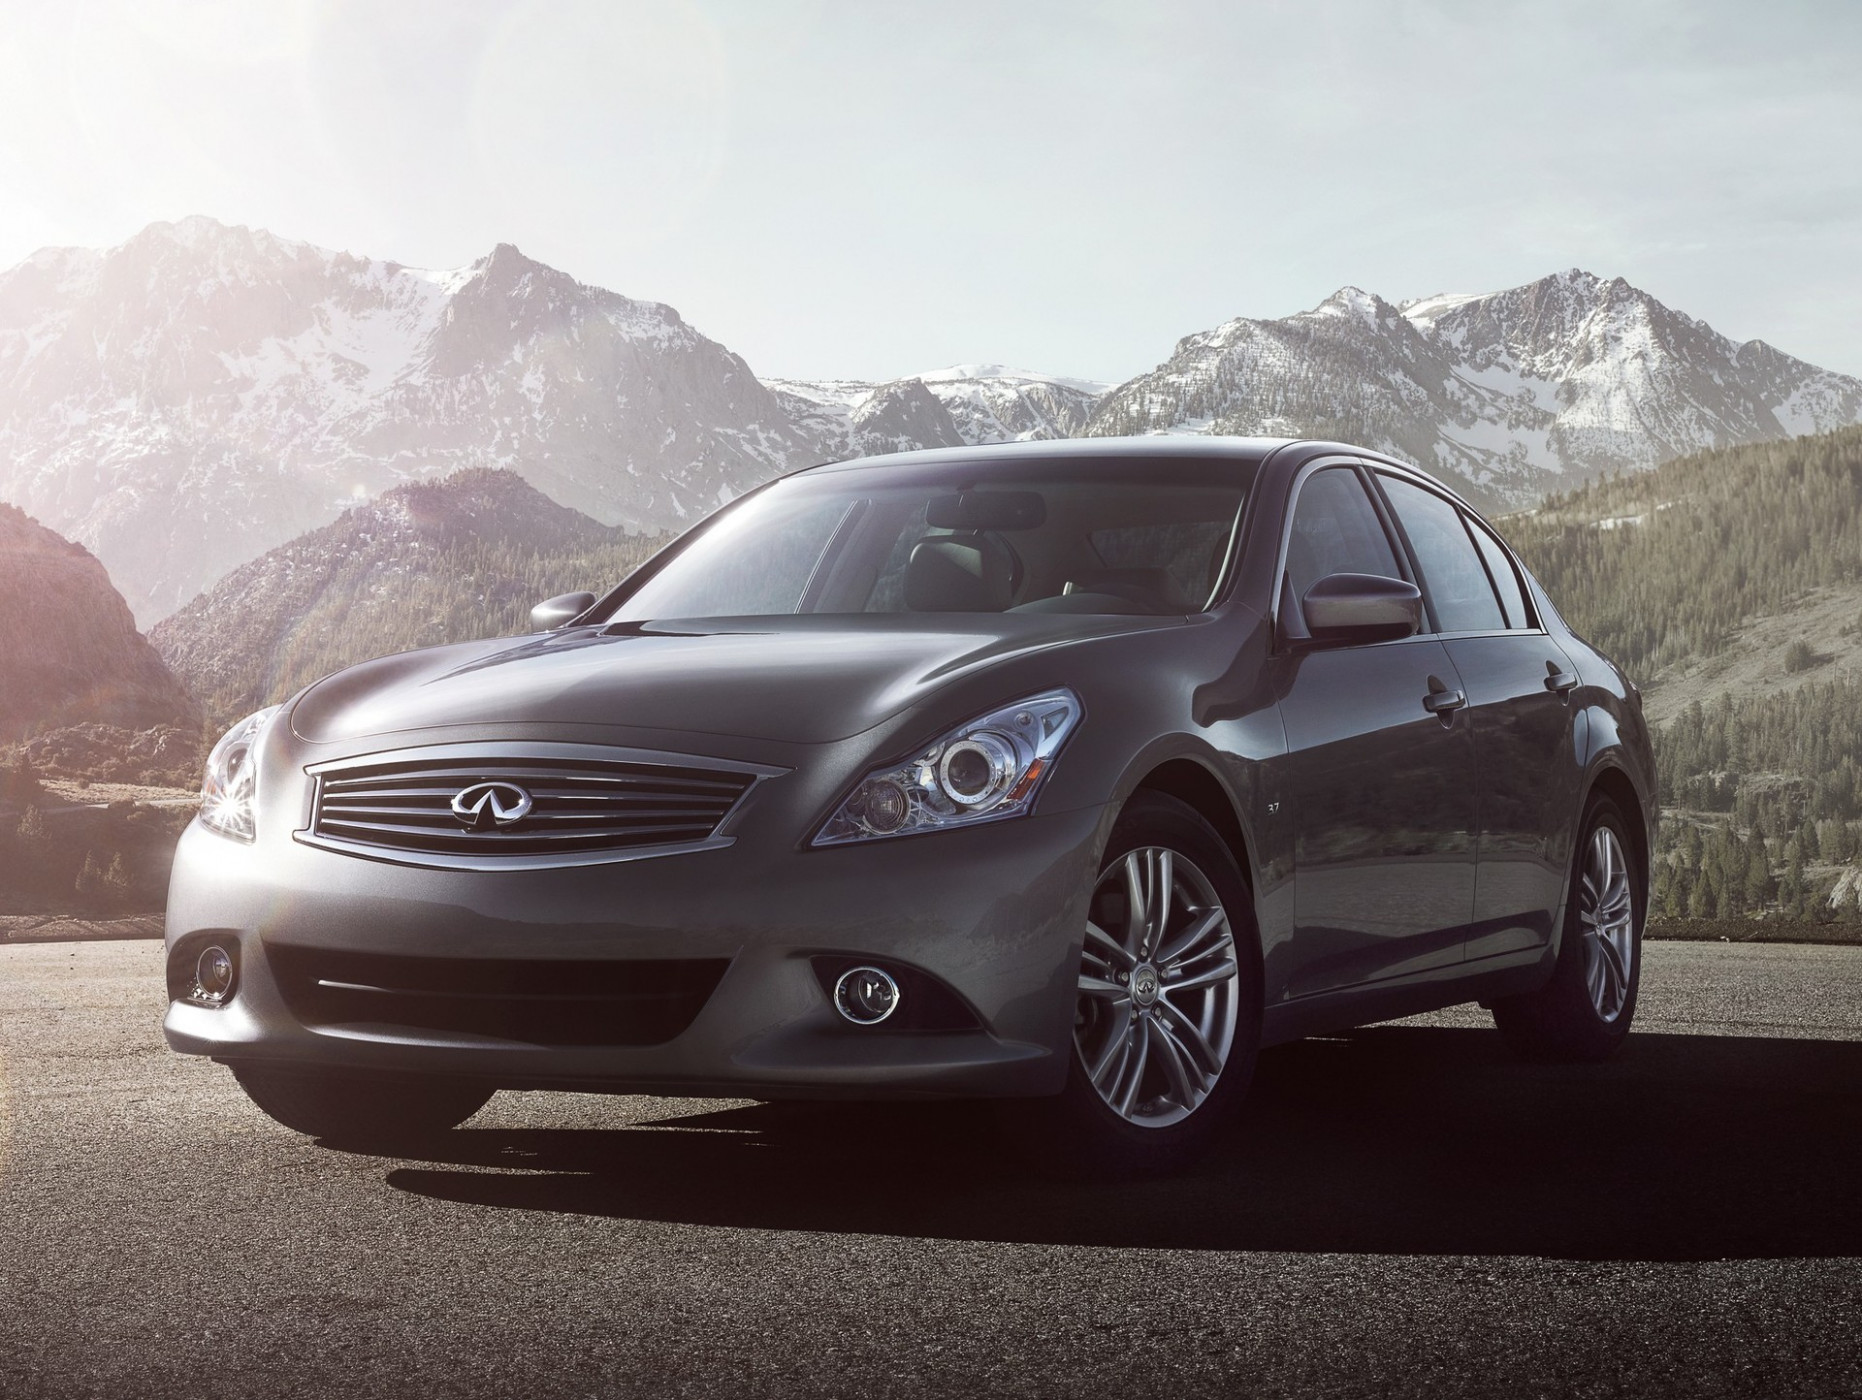 Redesign and Review 2022 Infiniti G37